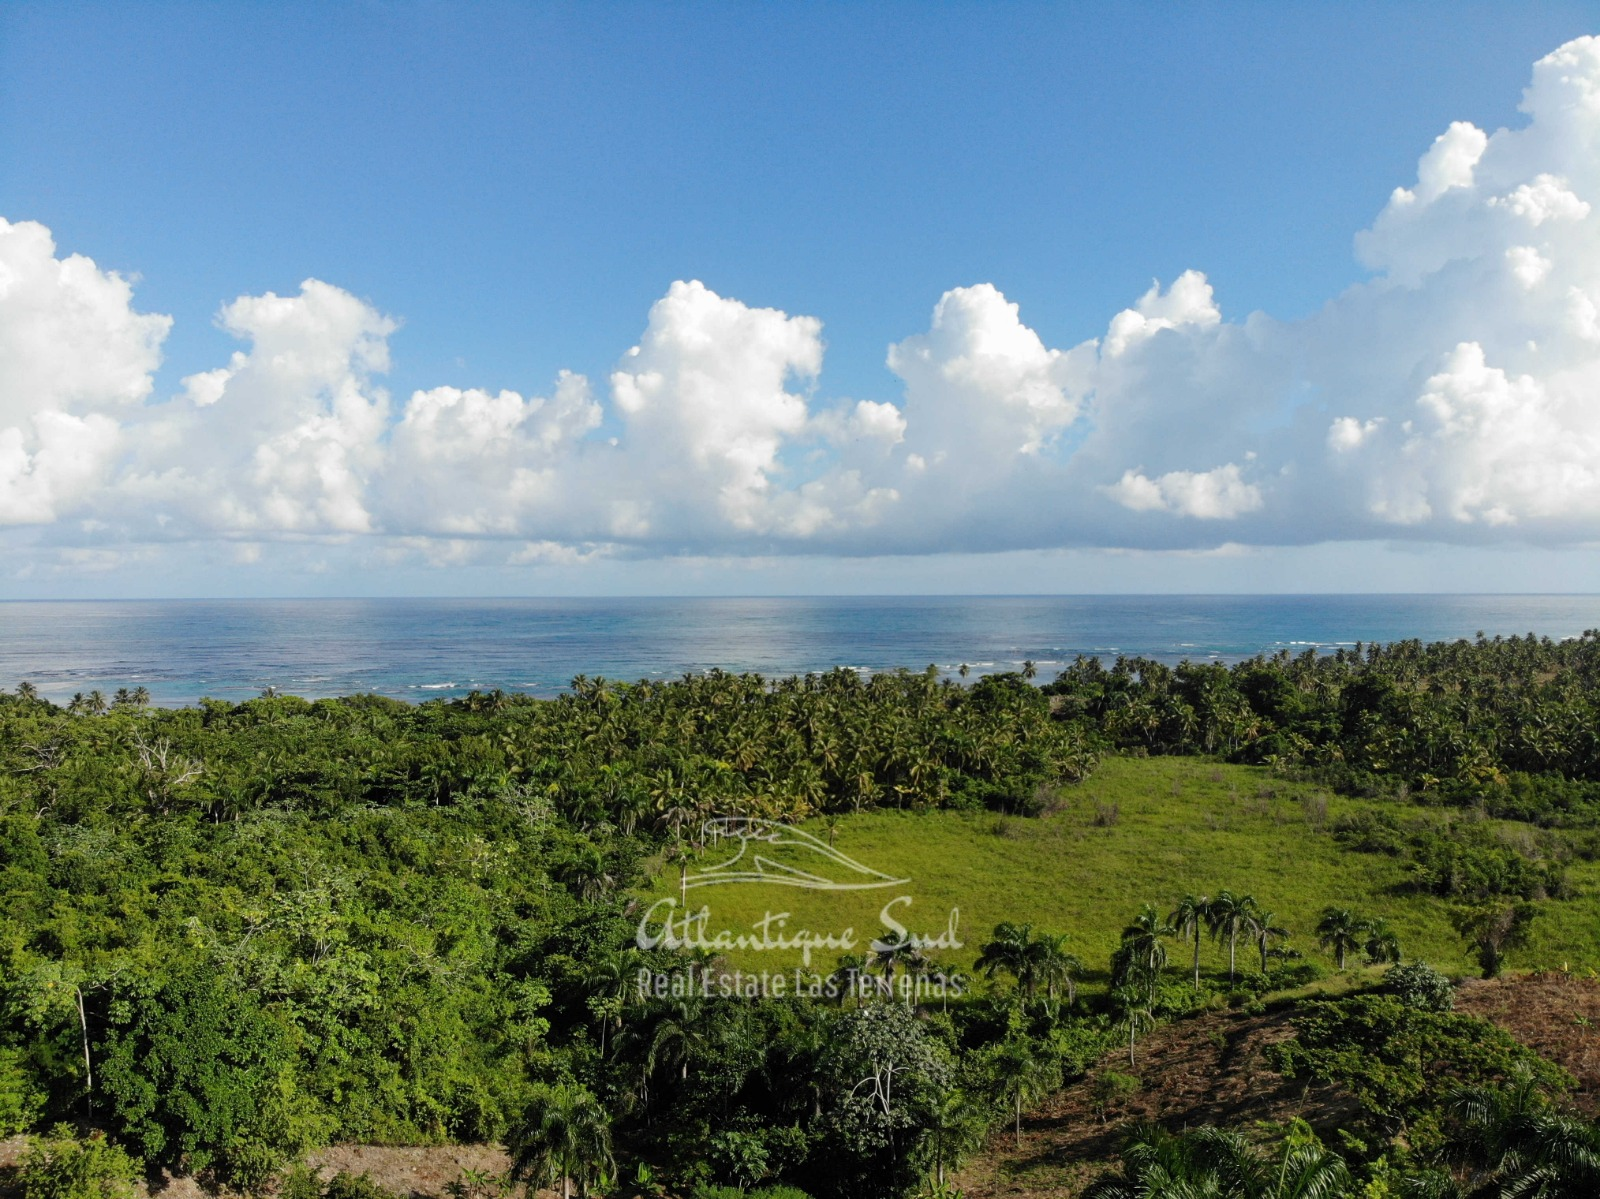 Land Lots for sale las terrenas samana21.jpeg